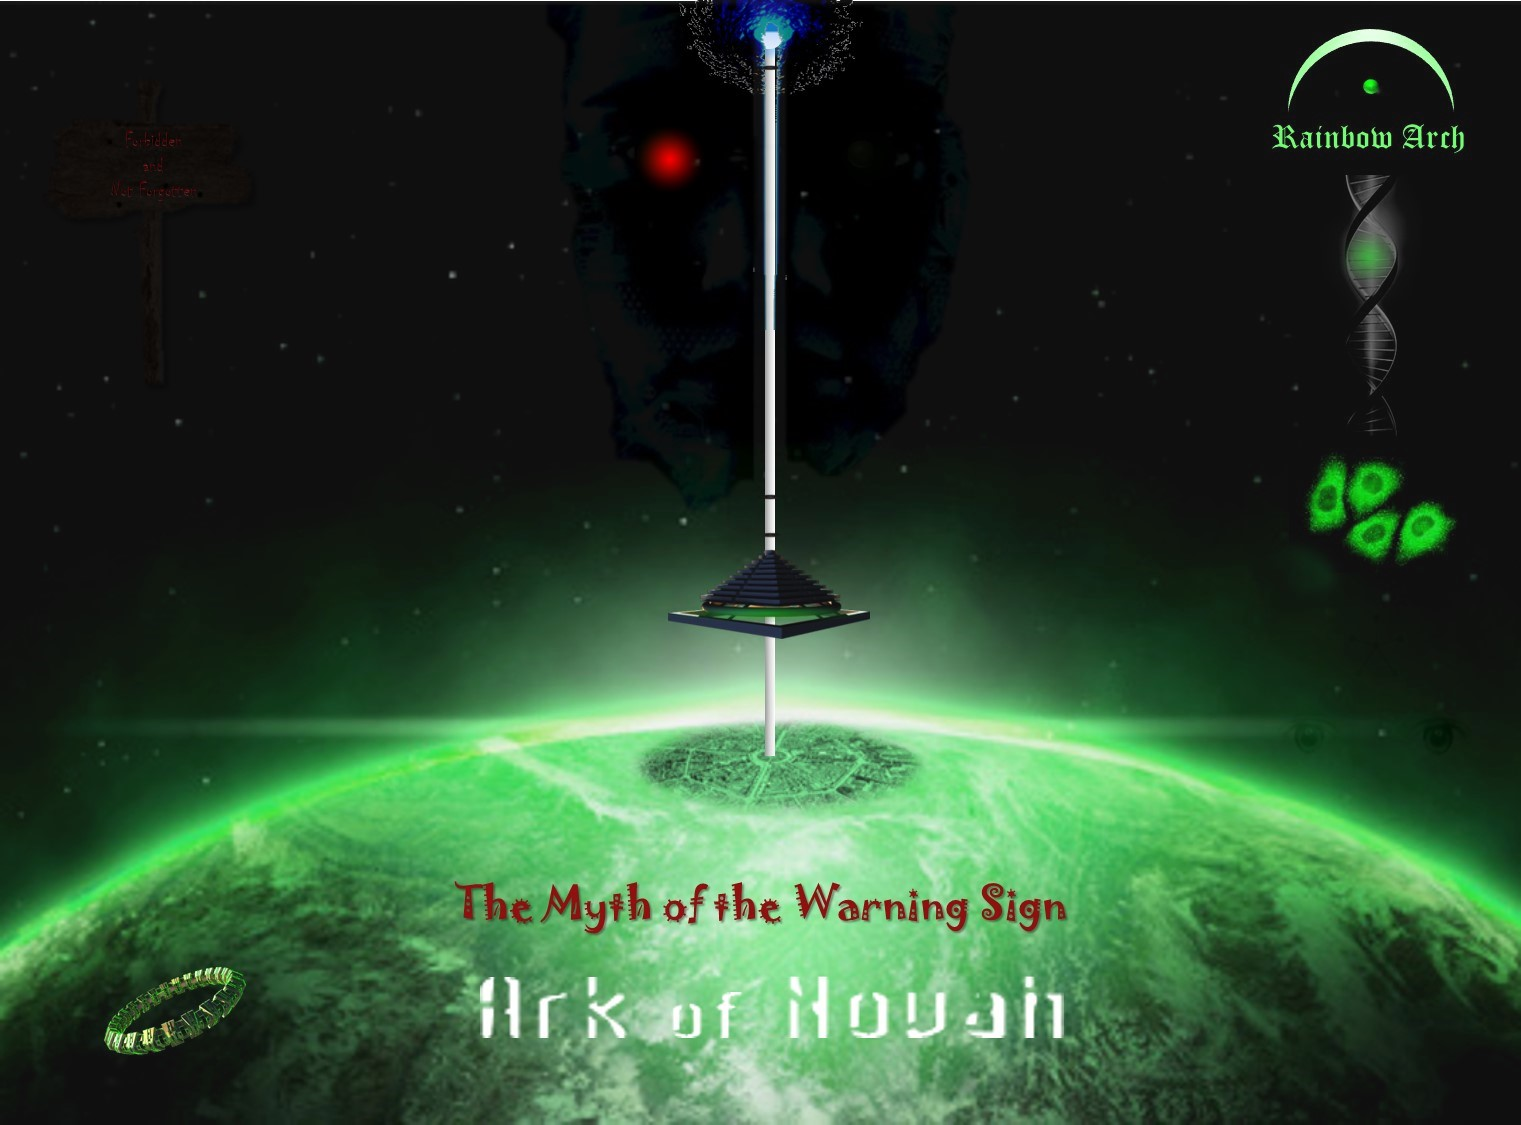 The Myth of the Warning Sign